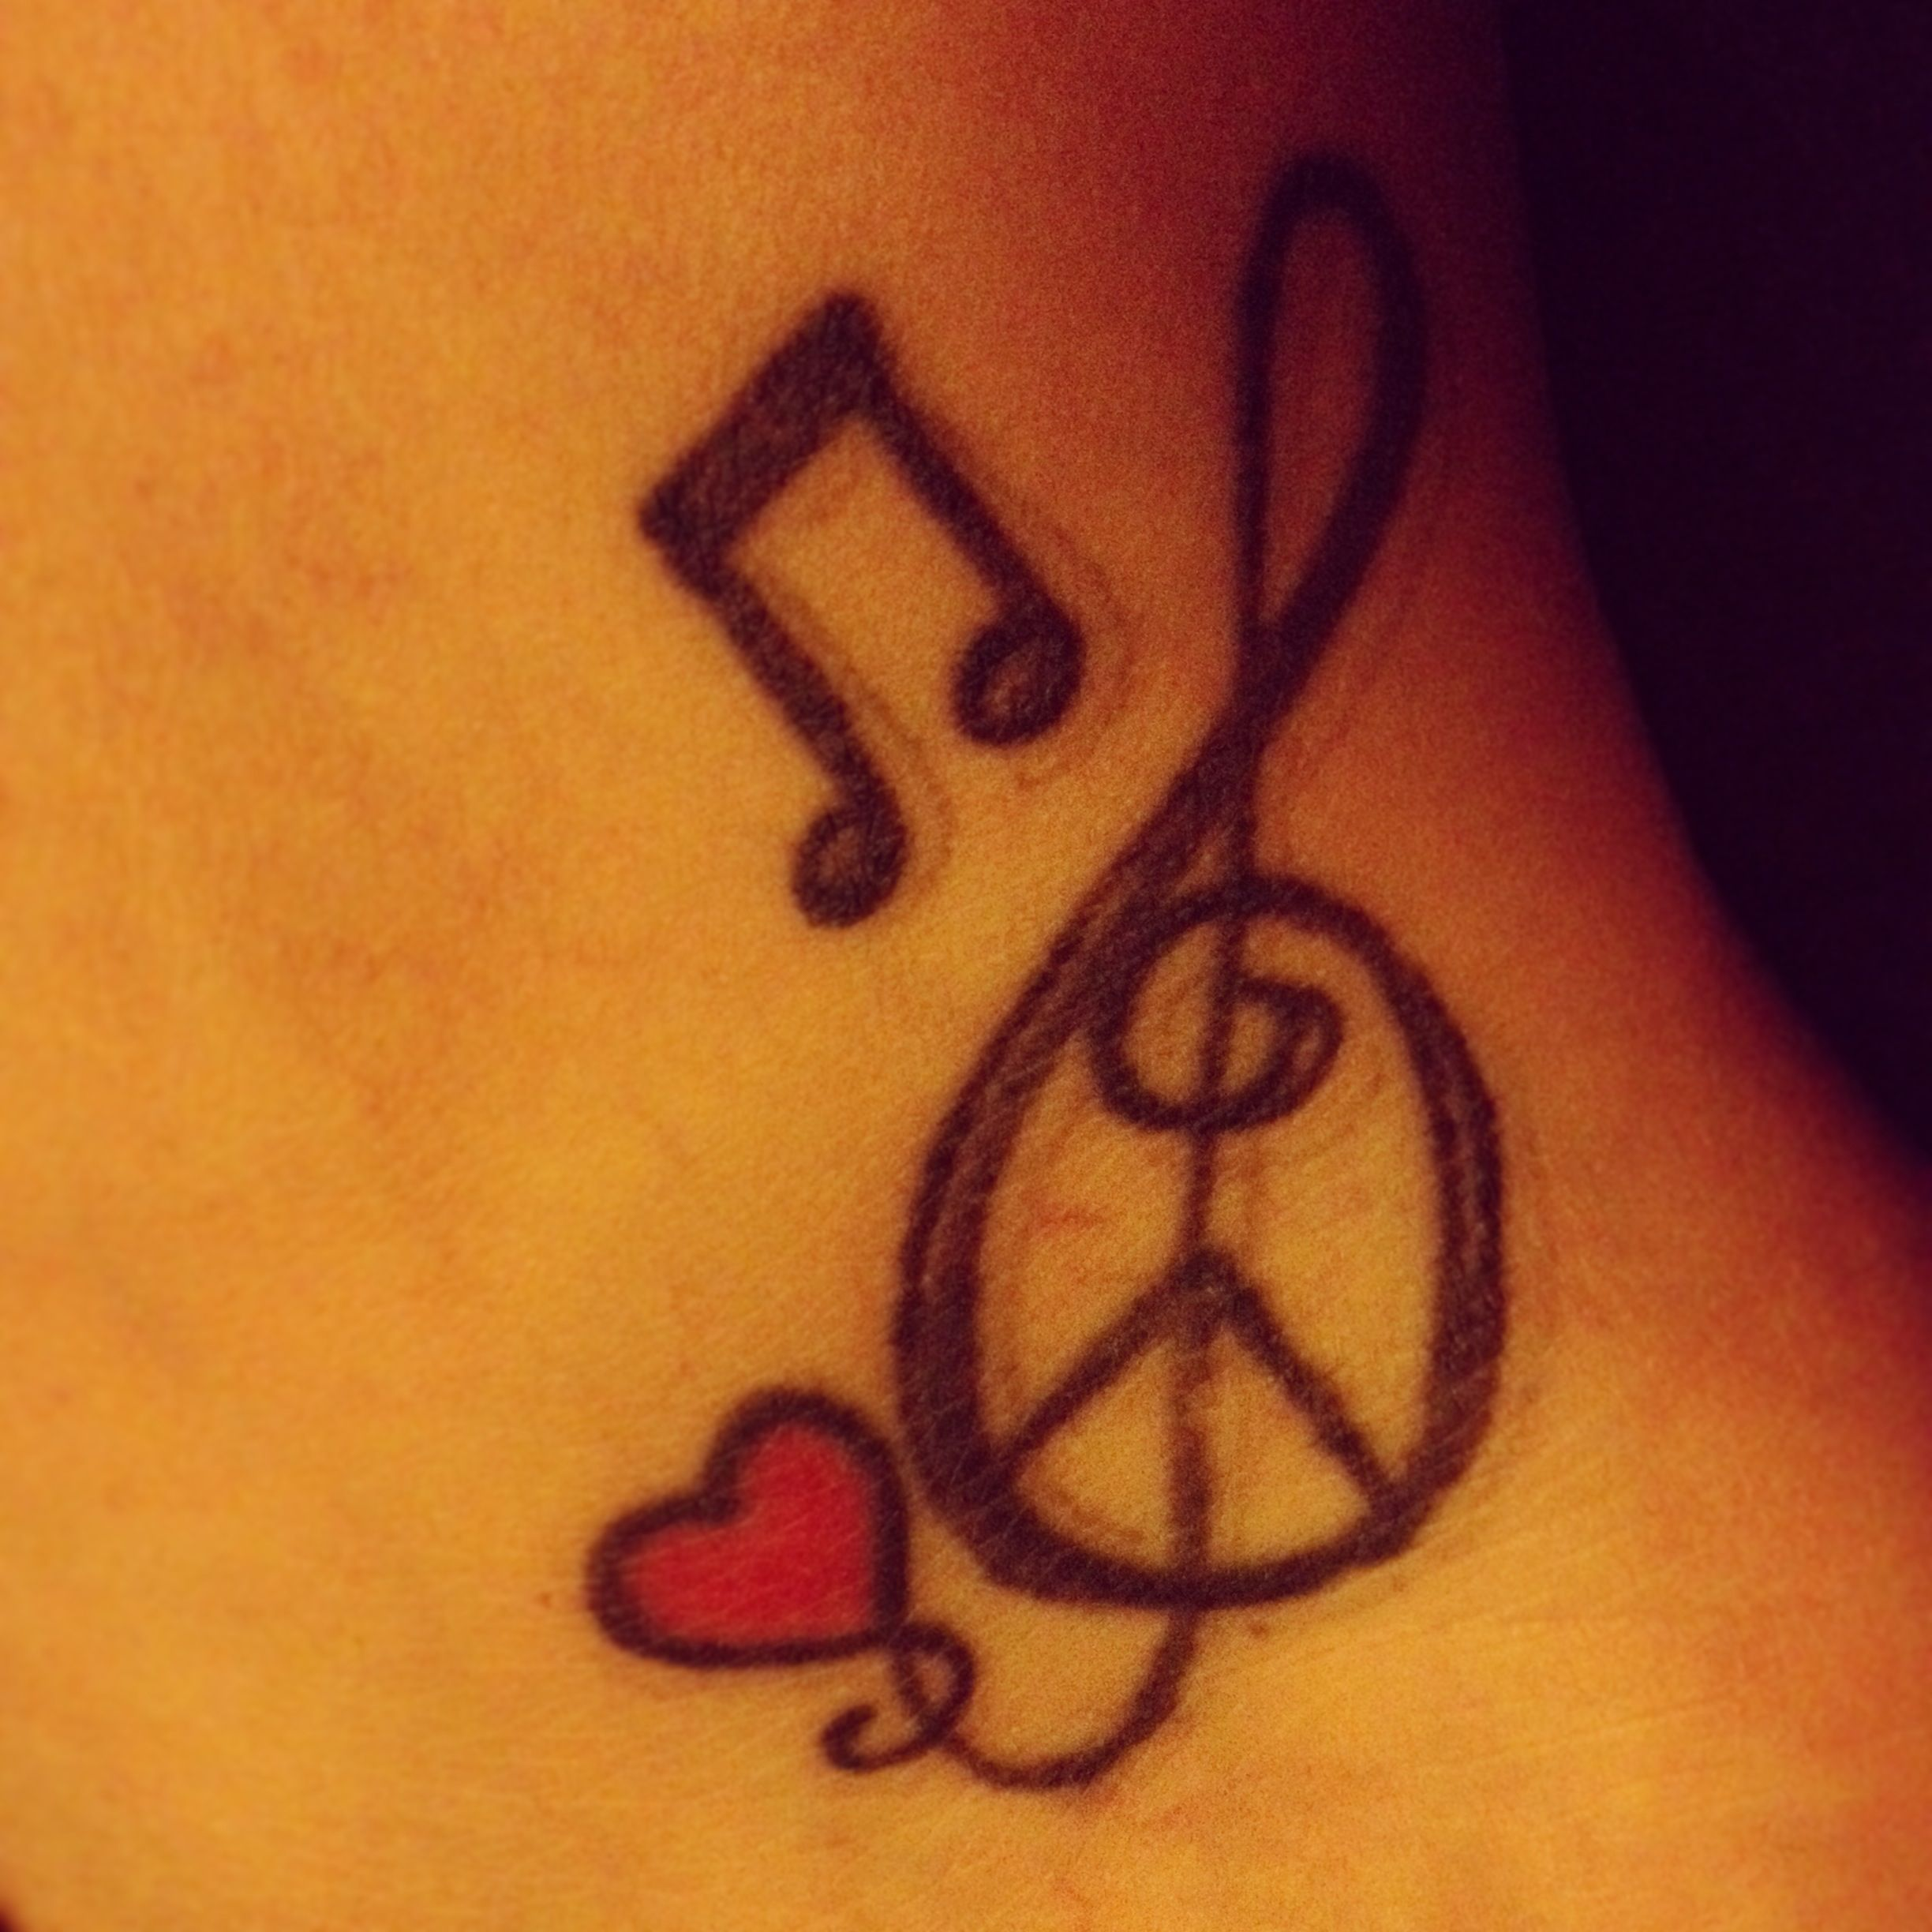 My ankle tattoo. Peace, love, music. ❤